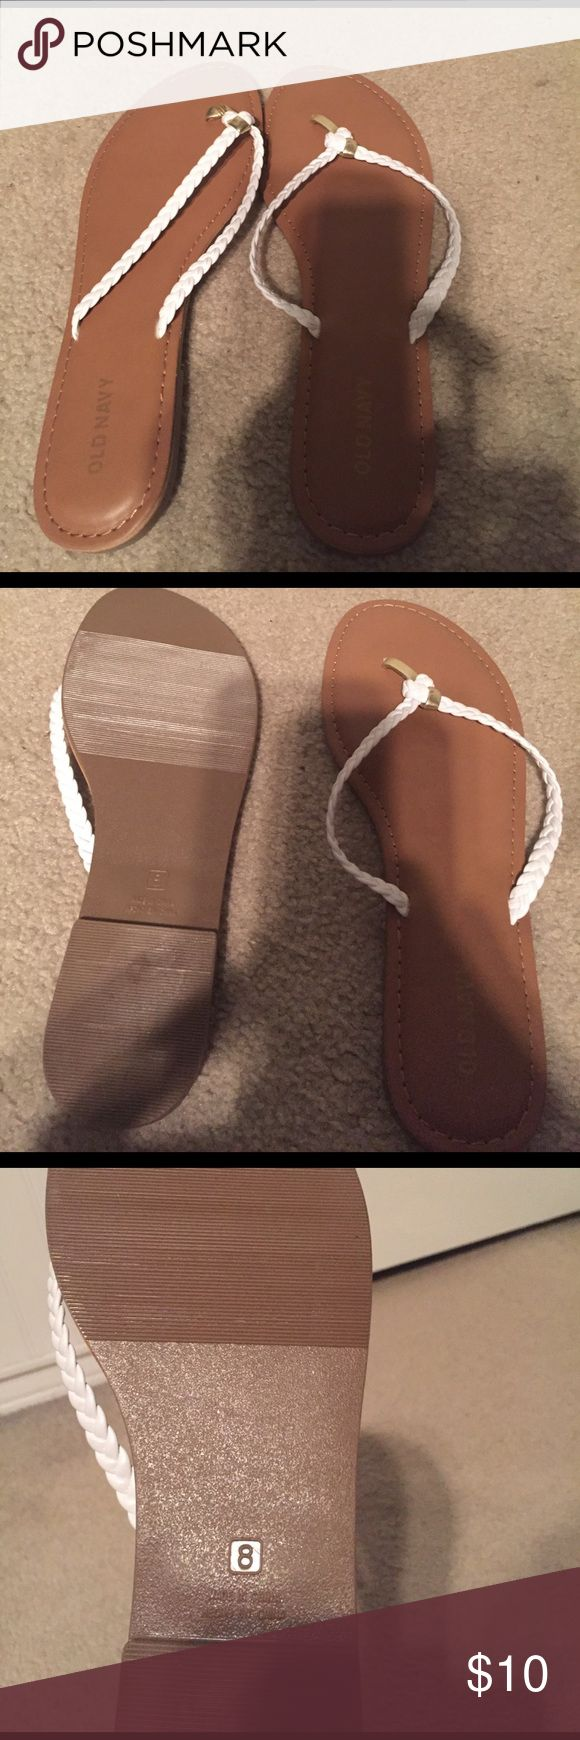 Never worn white old navy flip flops Flip flops from old navy. Never worn. In perfect condition Old Navy Shoes Sandals